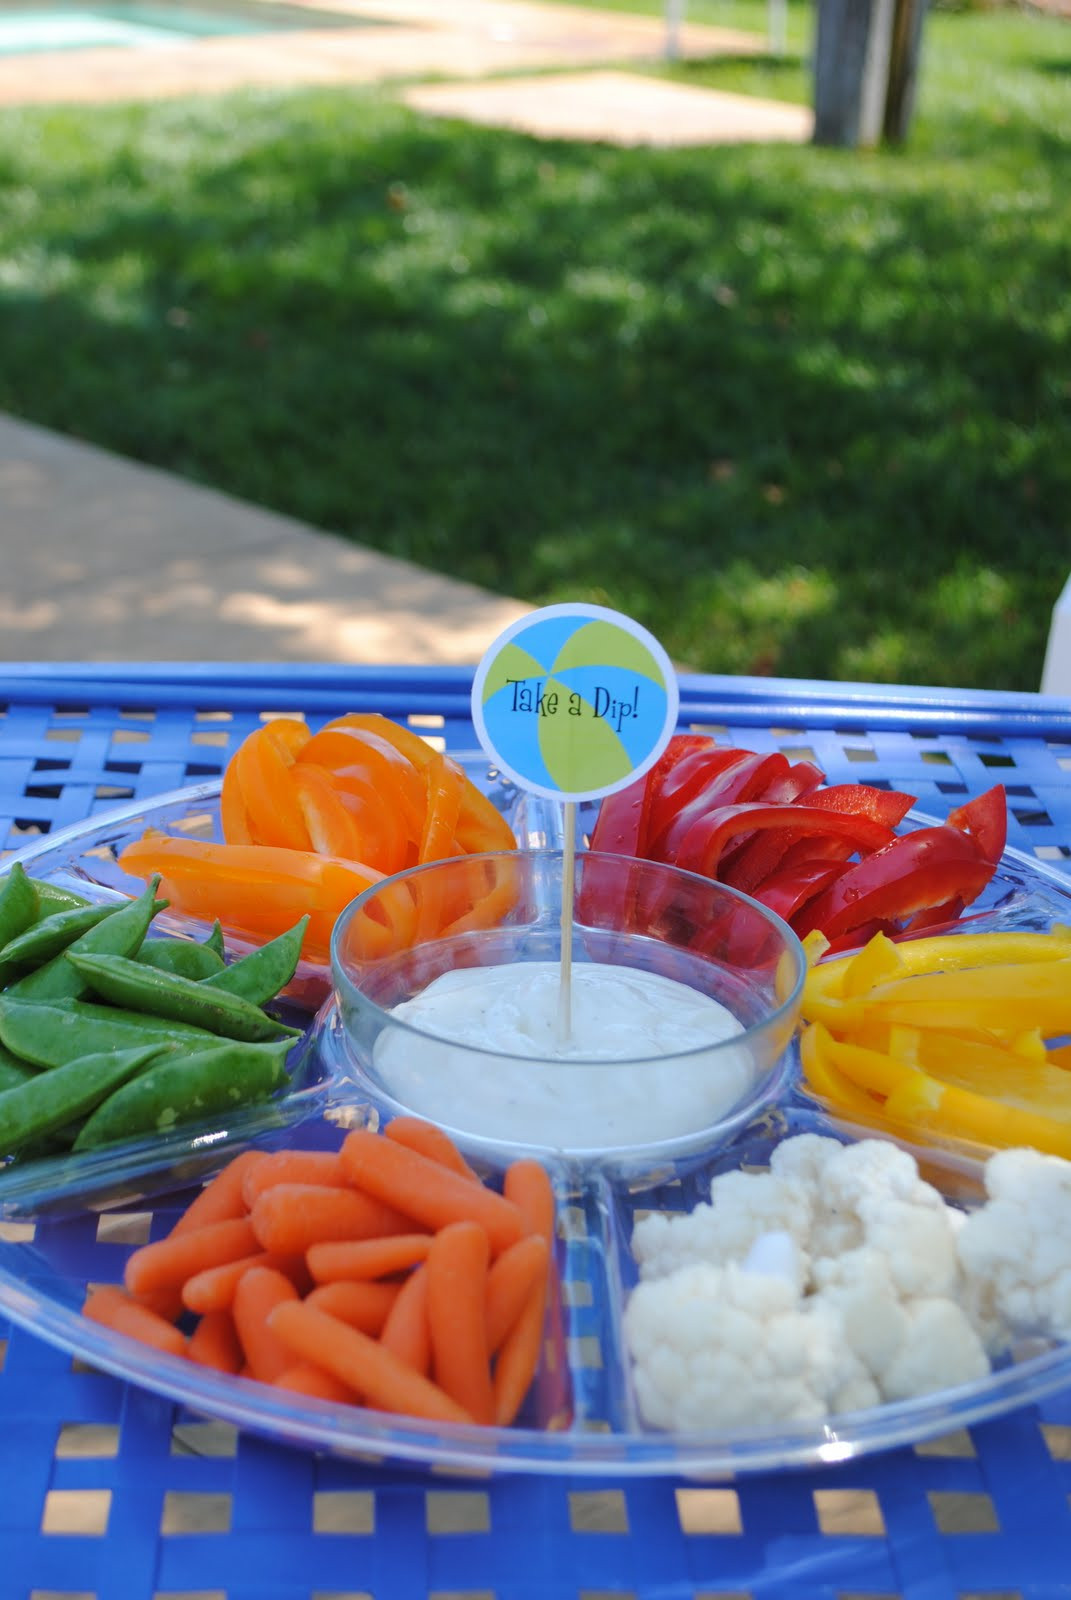 Food Ideas For Pool Party  Jac o lyn Murphy Pool Party Dips Drinks and Swim Snacks